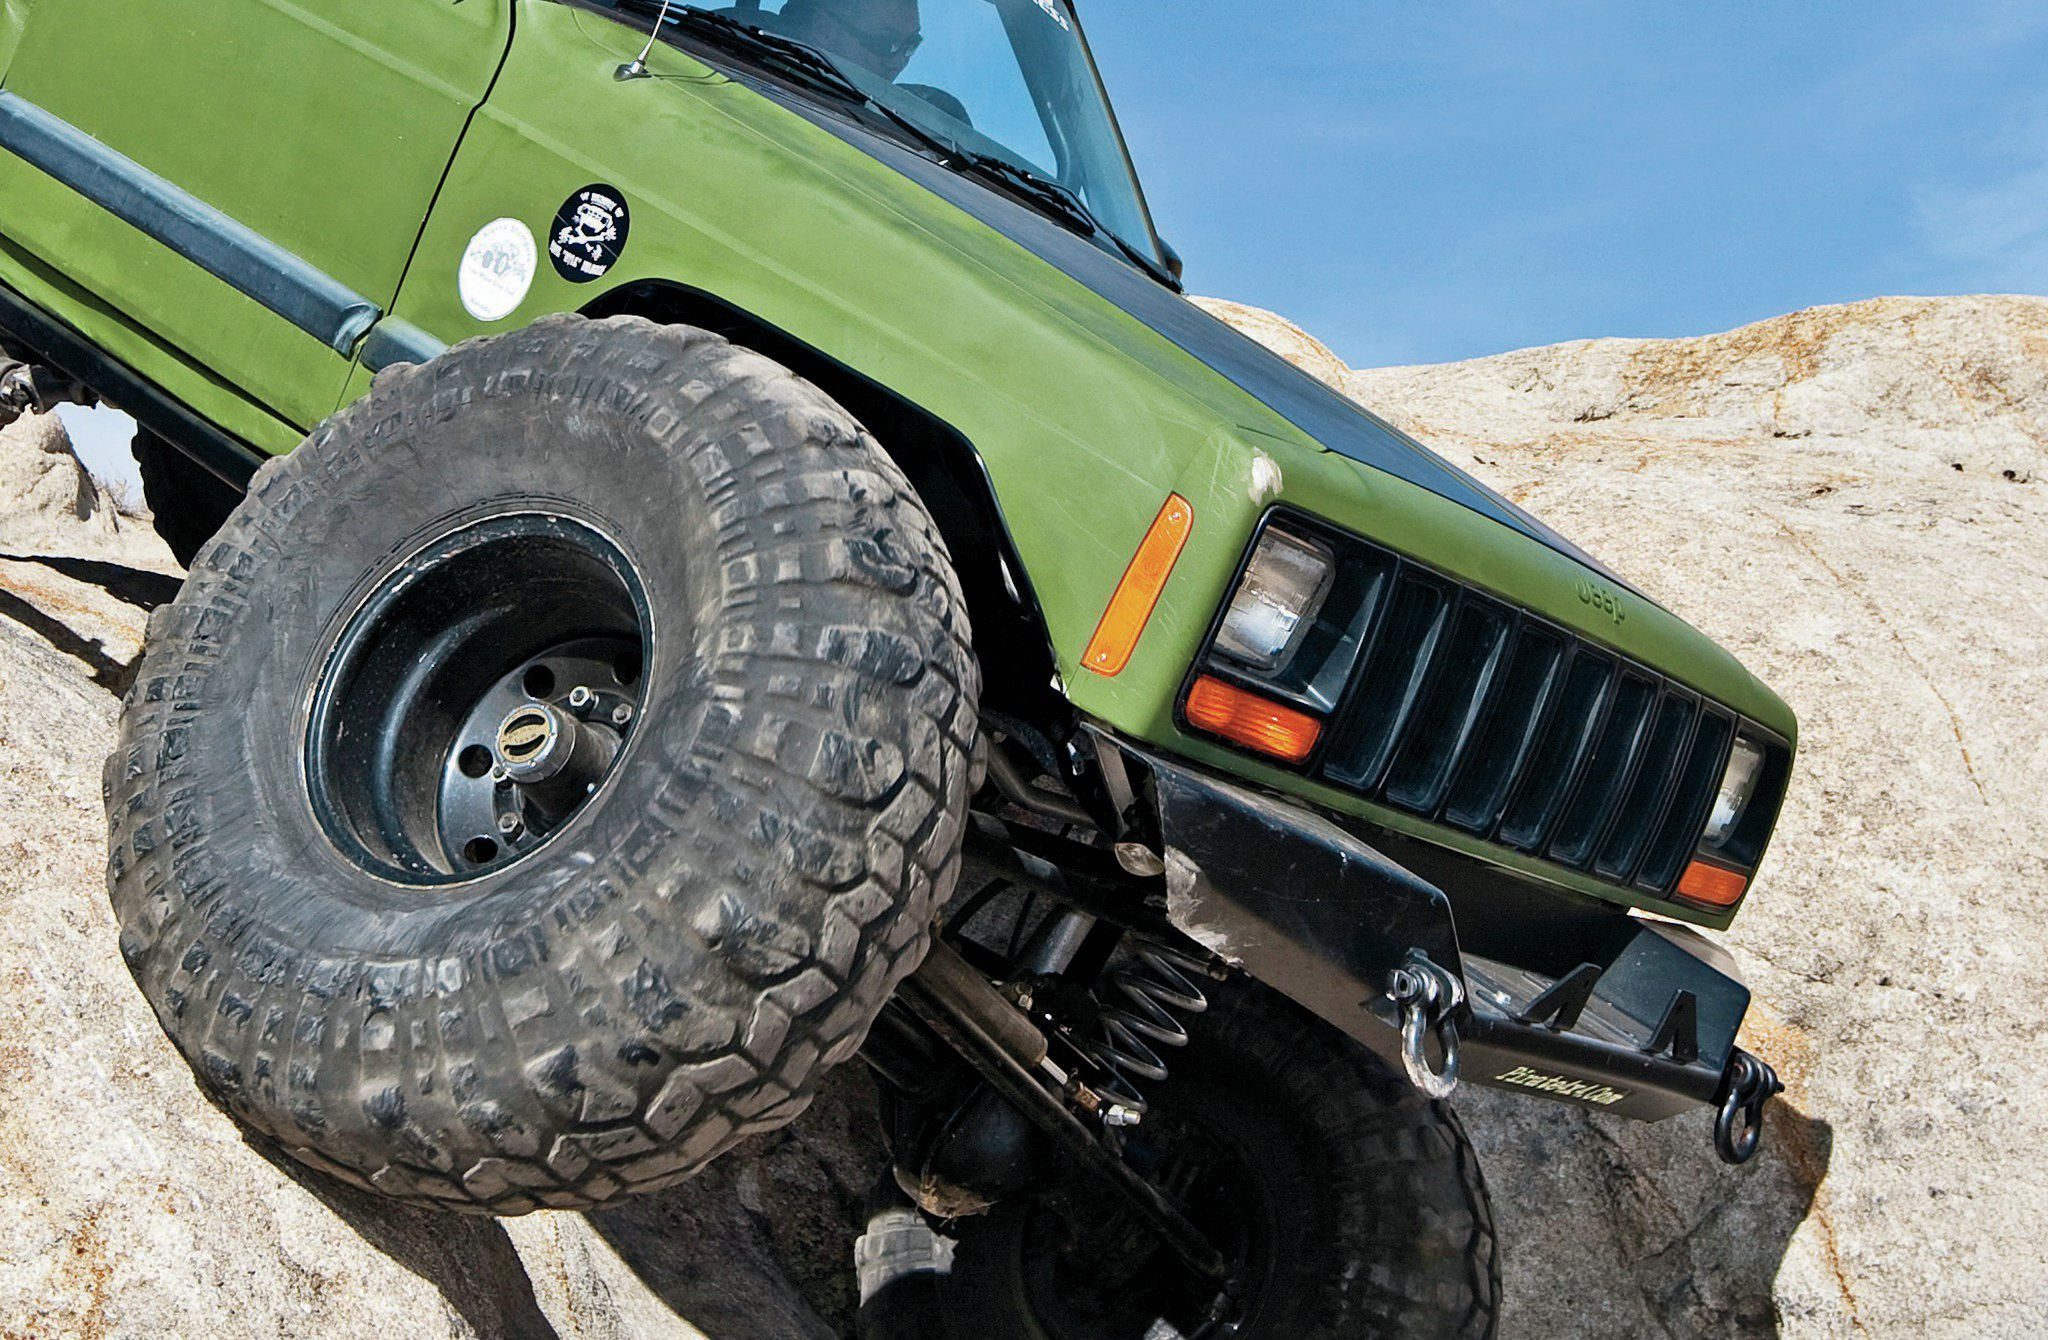 Steel wheels, like these from US Wheel, are strong and inexpensive, making them perfect for a dedicated rockcrawler. They are also available with shallow backspacing, which widens the track width and adds stability and clearance but also increases steering effort.